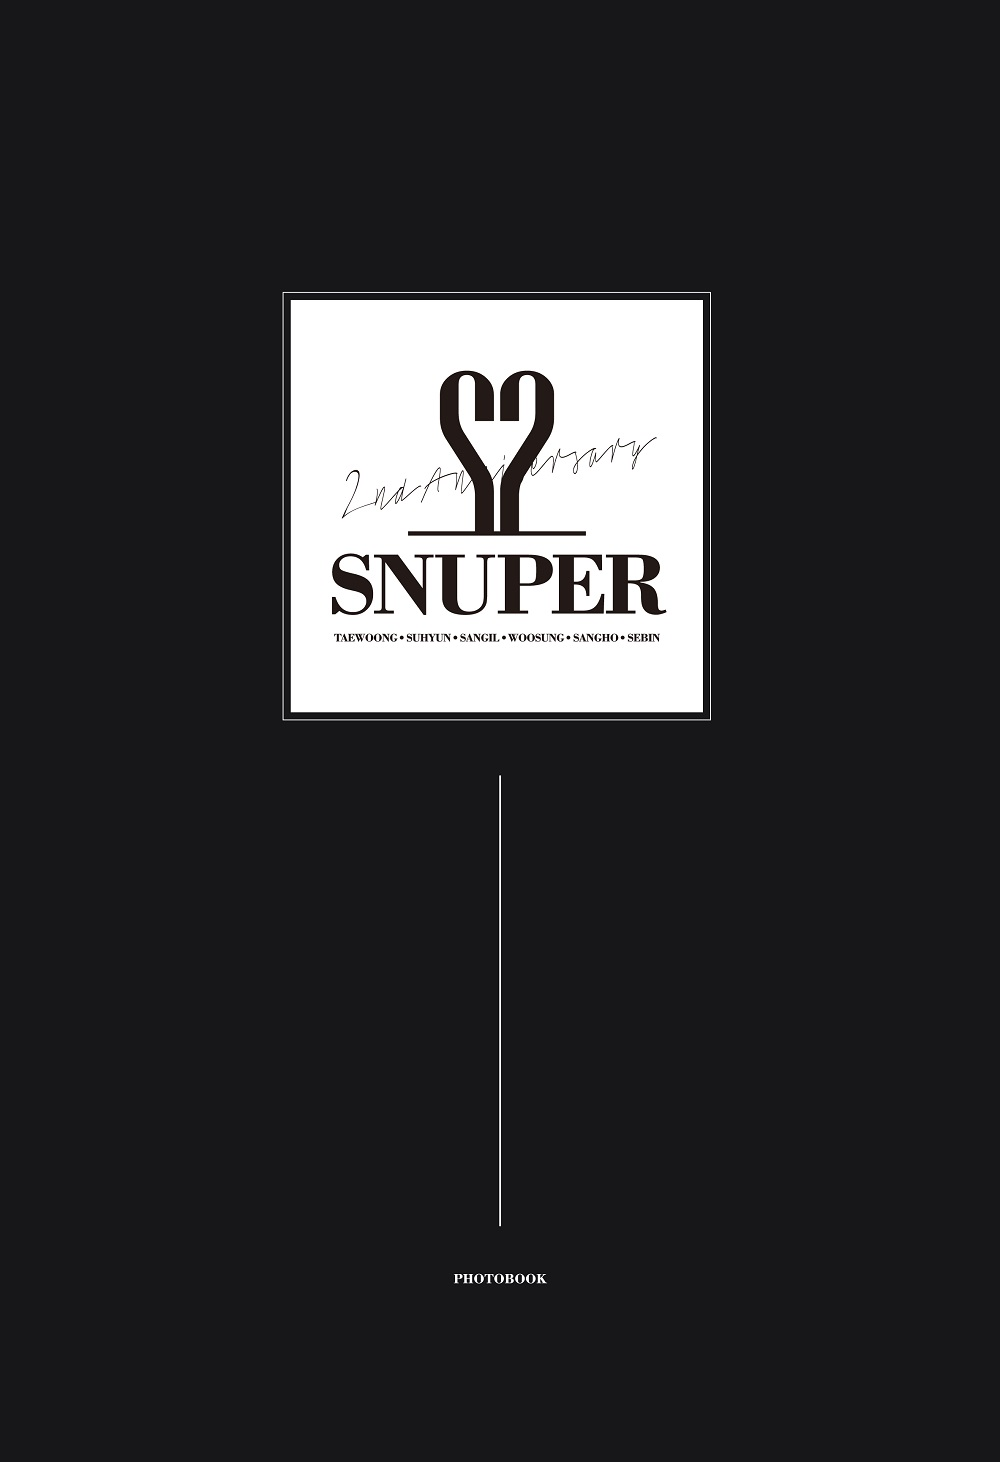 [Pre] Snuper : 2nd ANNIVERSARY PHOTOBOOK